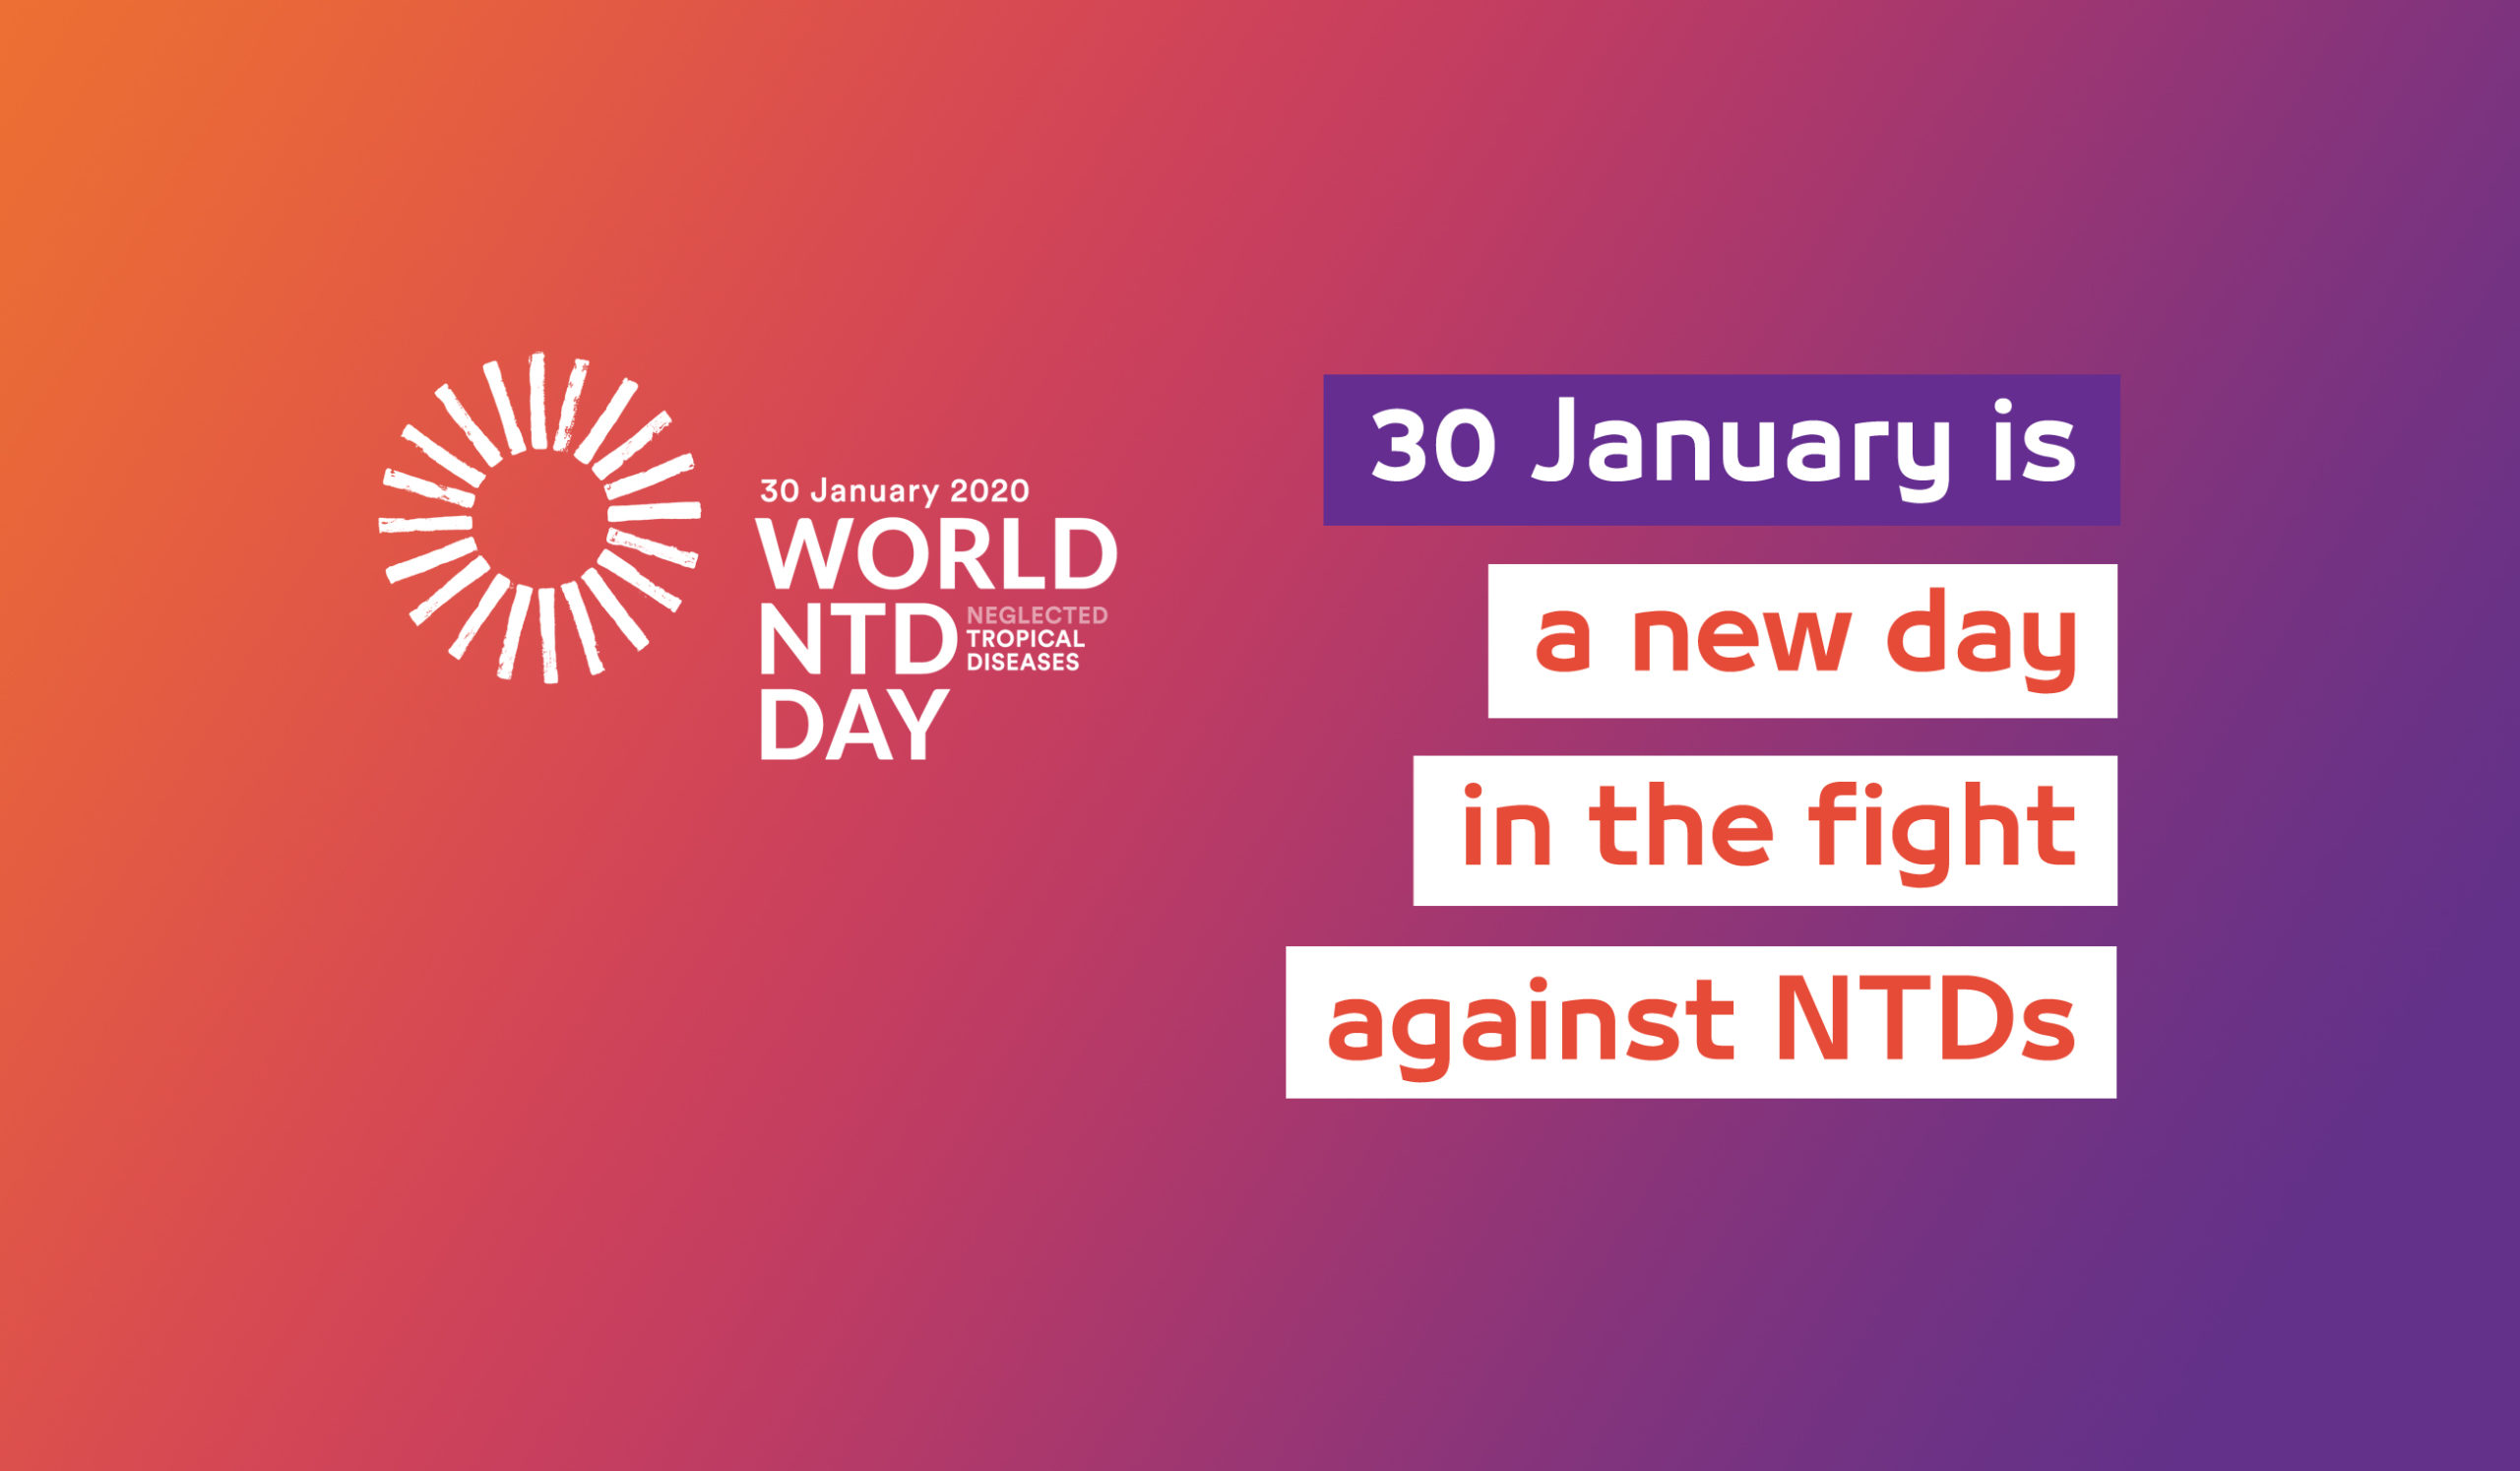 World NTD Day